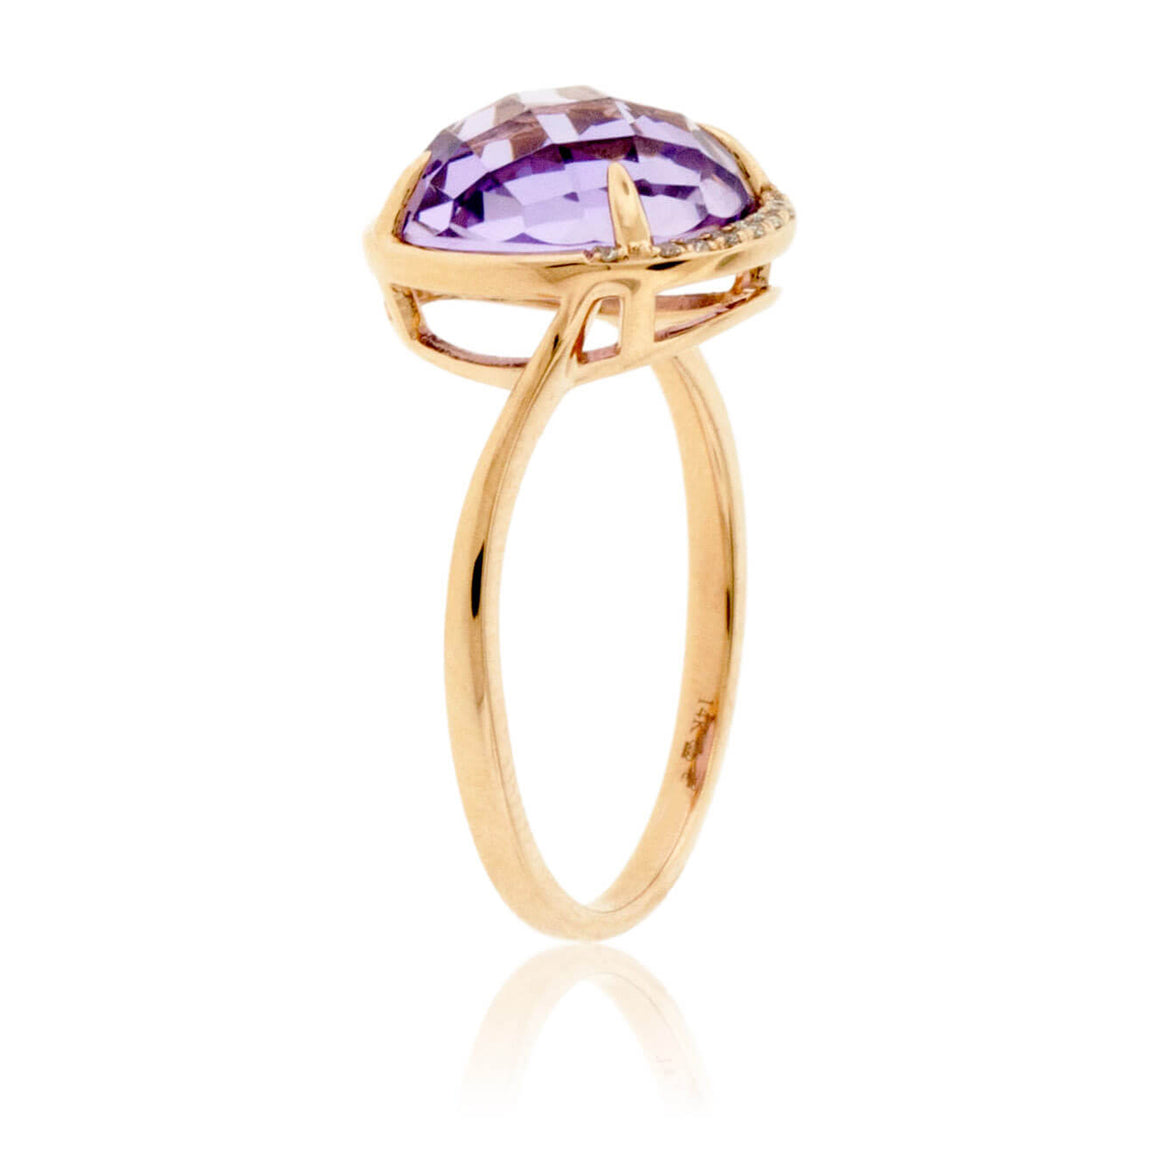 Fancy Round Cut Amethyst and Diamond Halo Ring